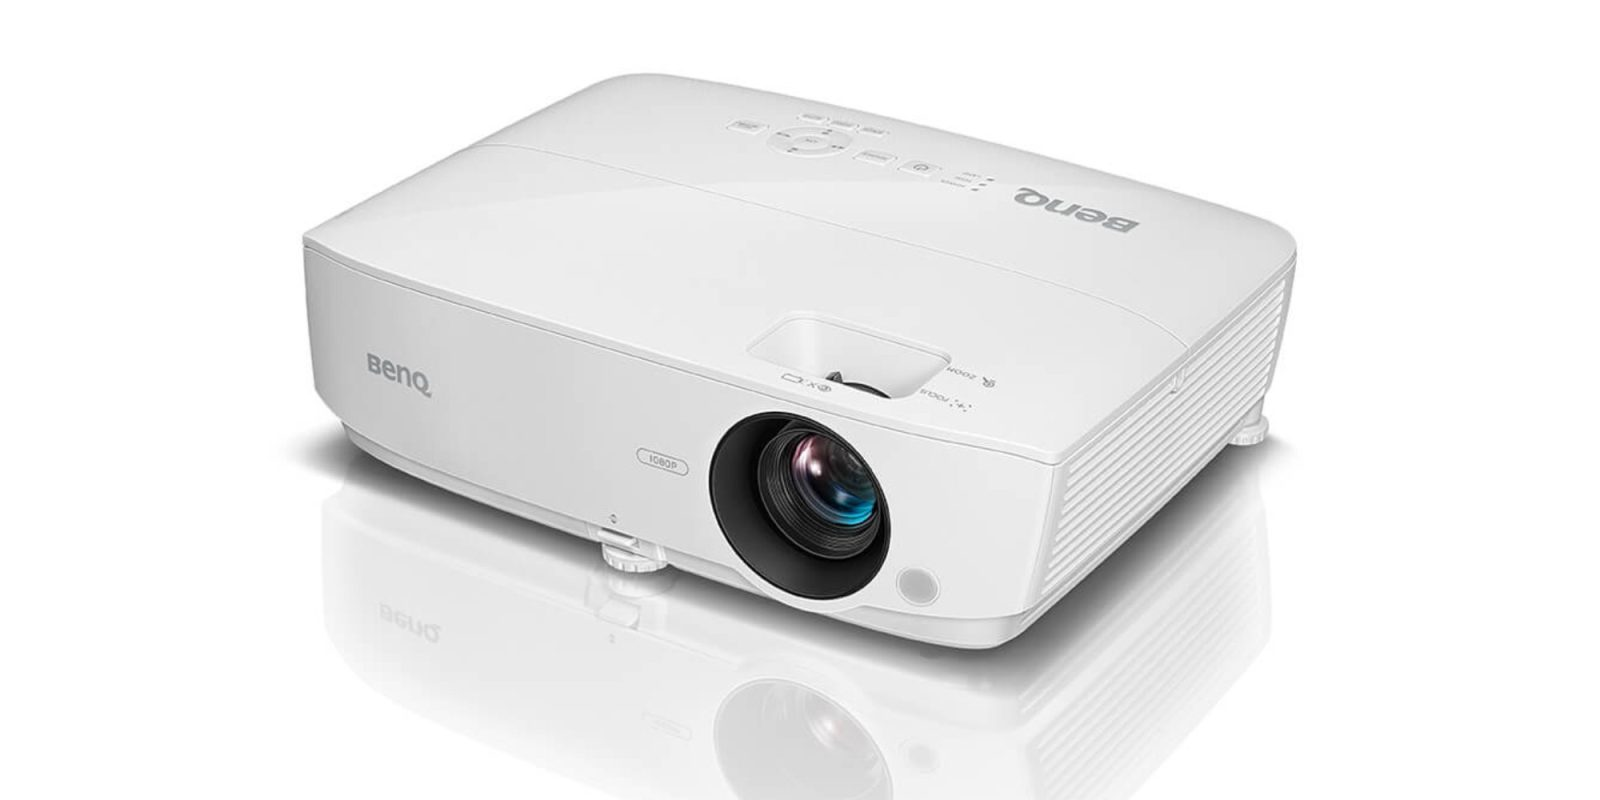 BenQ's $449 Projector creates a 120-inch Full HD display, has a 15,000-hour lamp, more (Save $100)